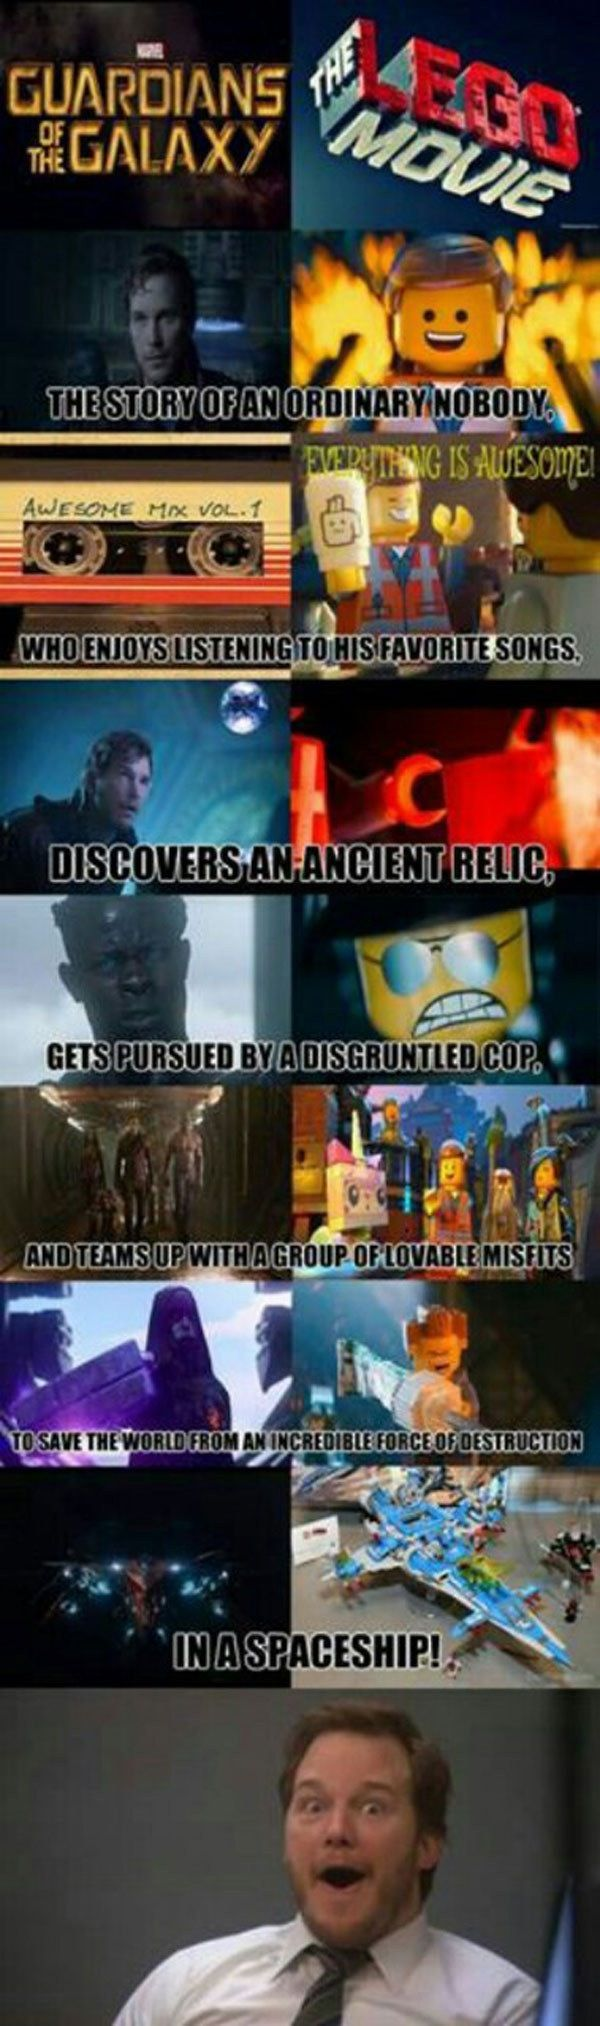 SPACESHIP! Proof ThatThe Lego Movie andGuardians of the GalaxyAre the Same Movie